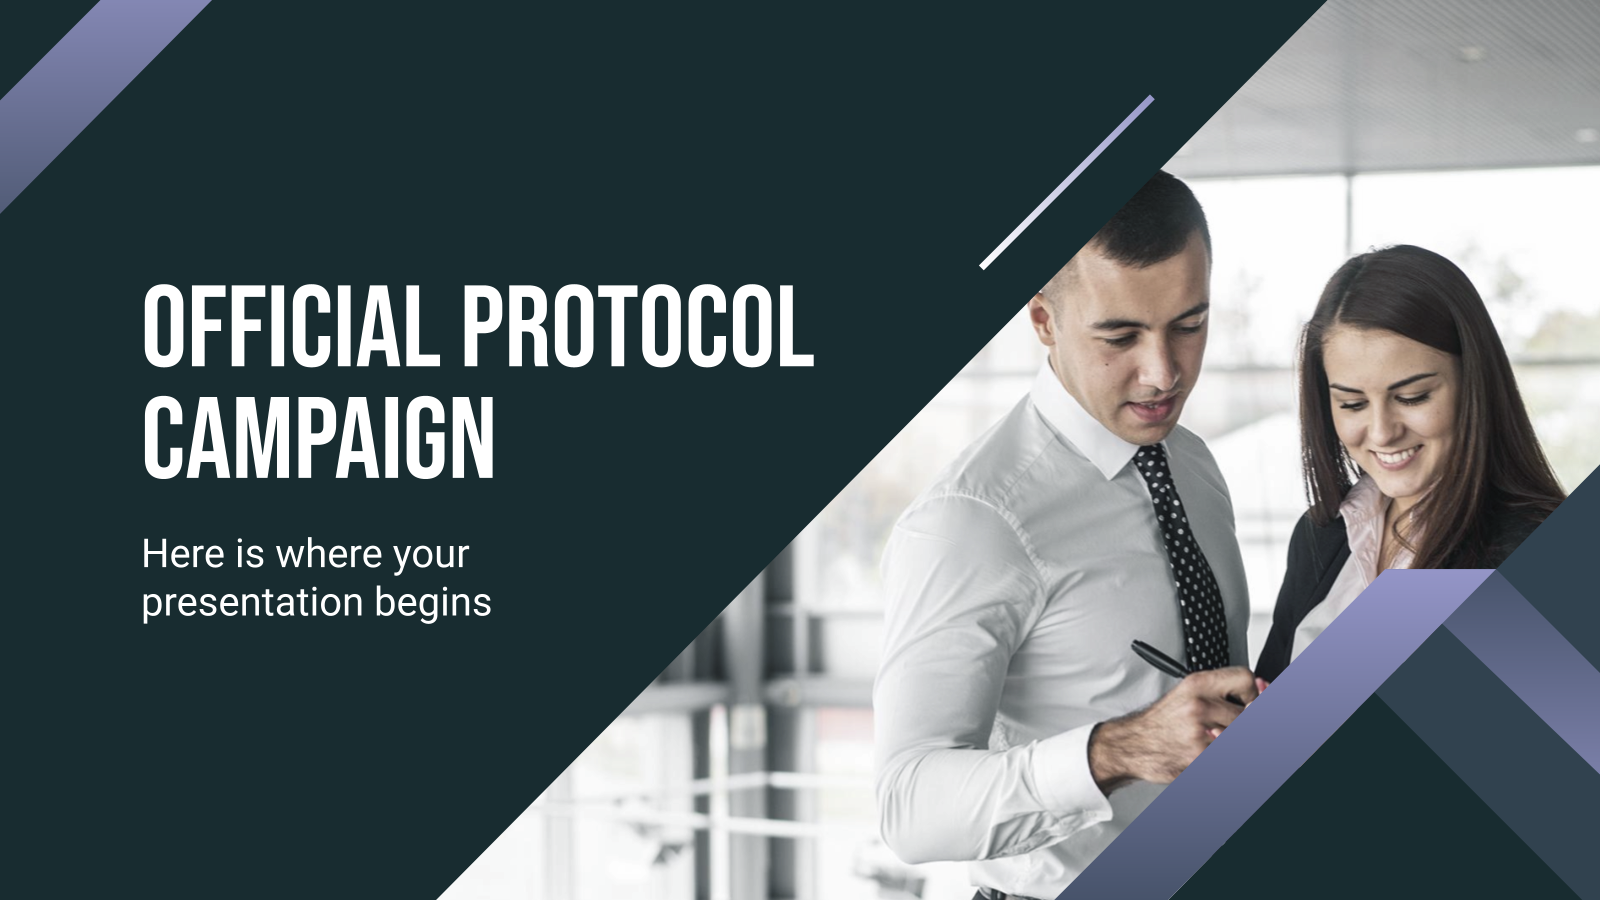 Official Protocol Campaign presentation template